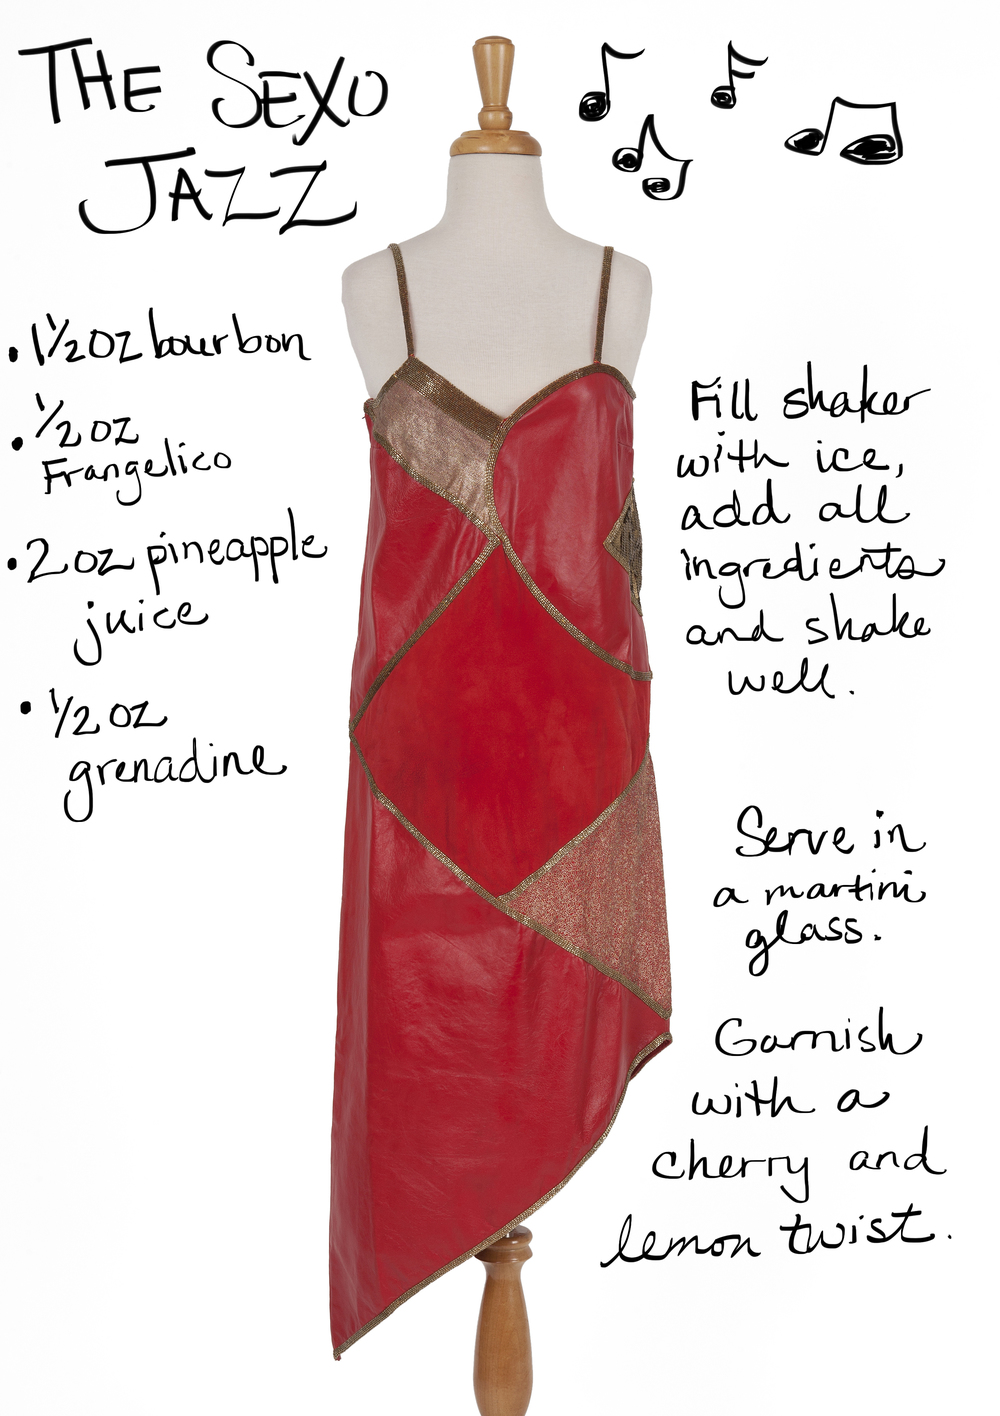 Vintage red leather cocktail dress paired with a whiskey cocktail- The Sexo Jazz